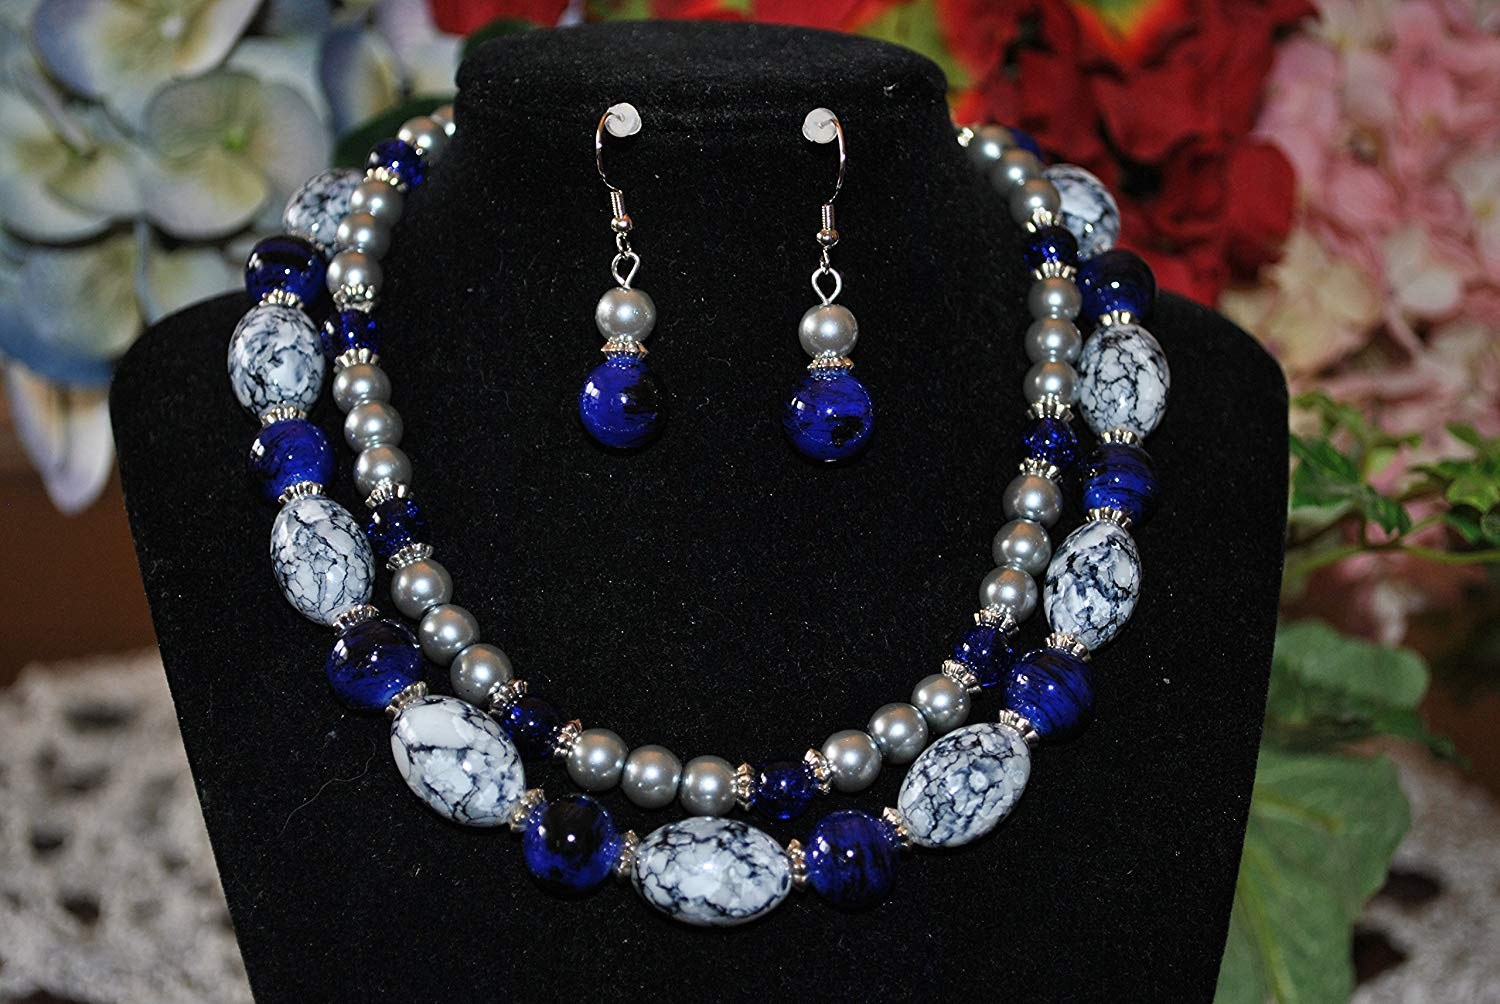 91d48efc0543a Get Quotations · Beautiful double layer pearl and blue bead necklace with  matching earrings. Necklace measures 7